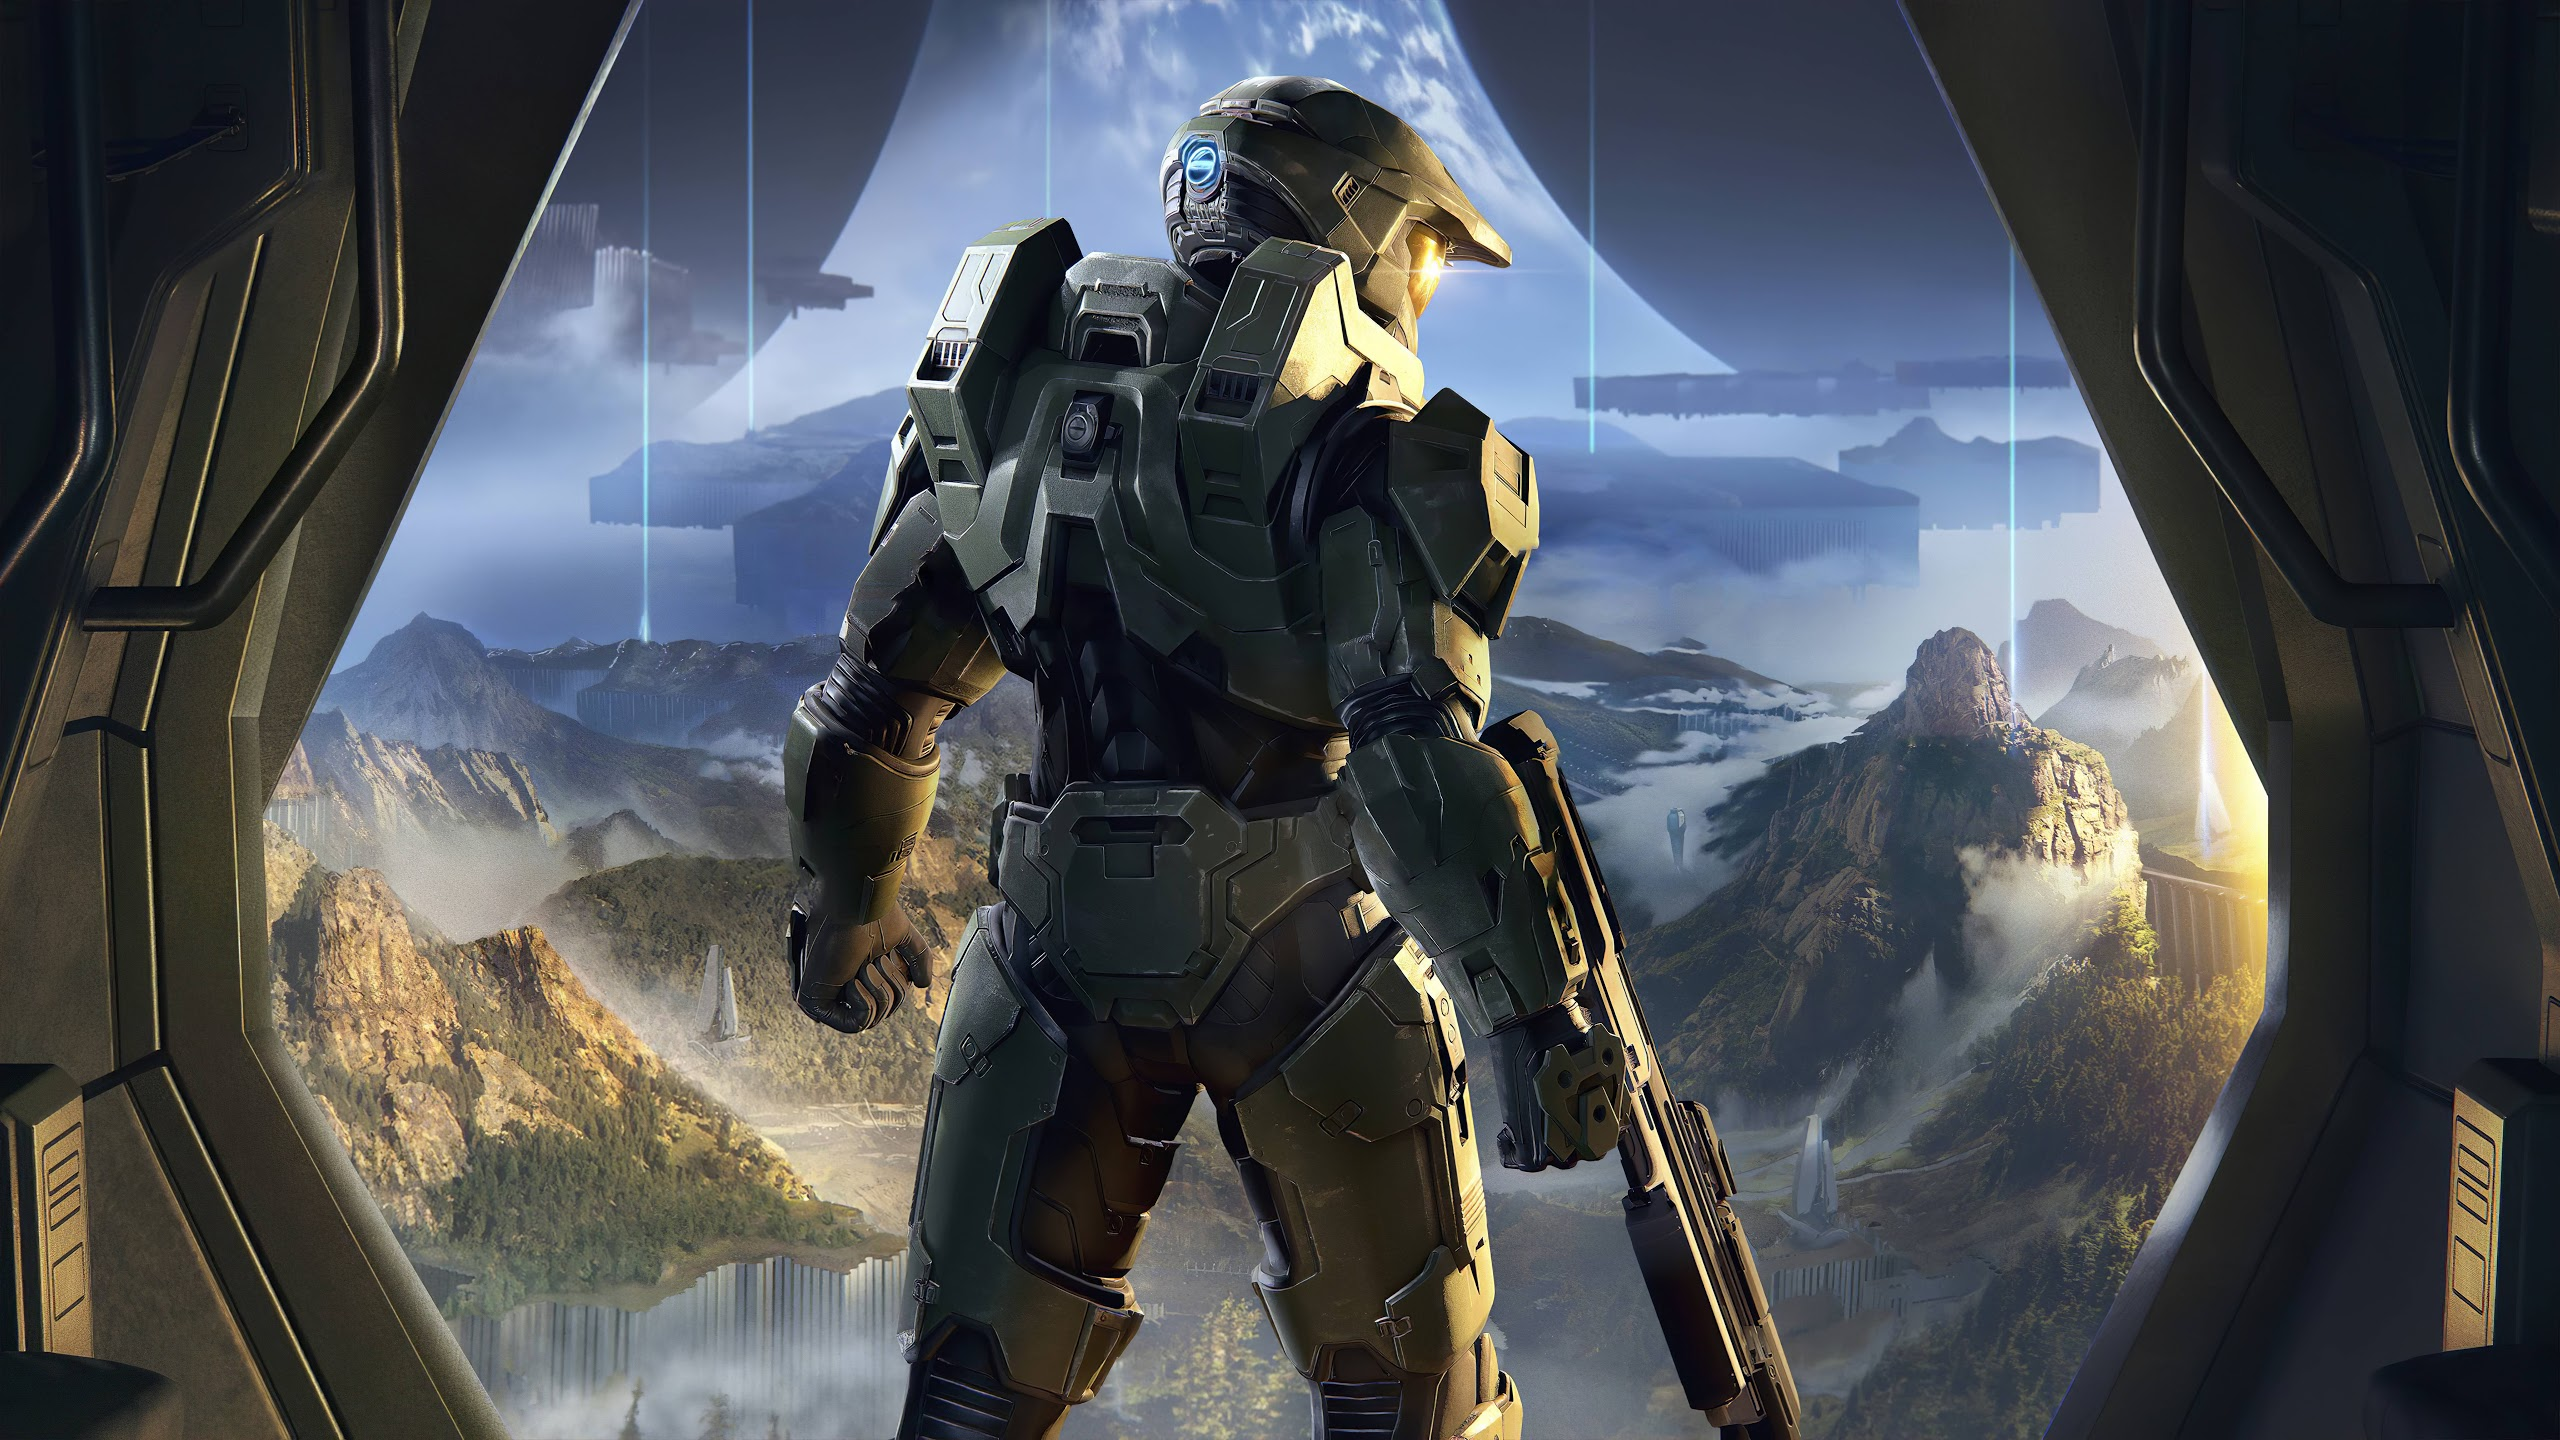 halo-infinite-master-chief-uhdpaper.com-8K-10 (1)